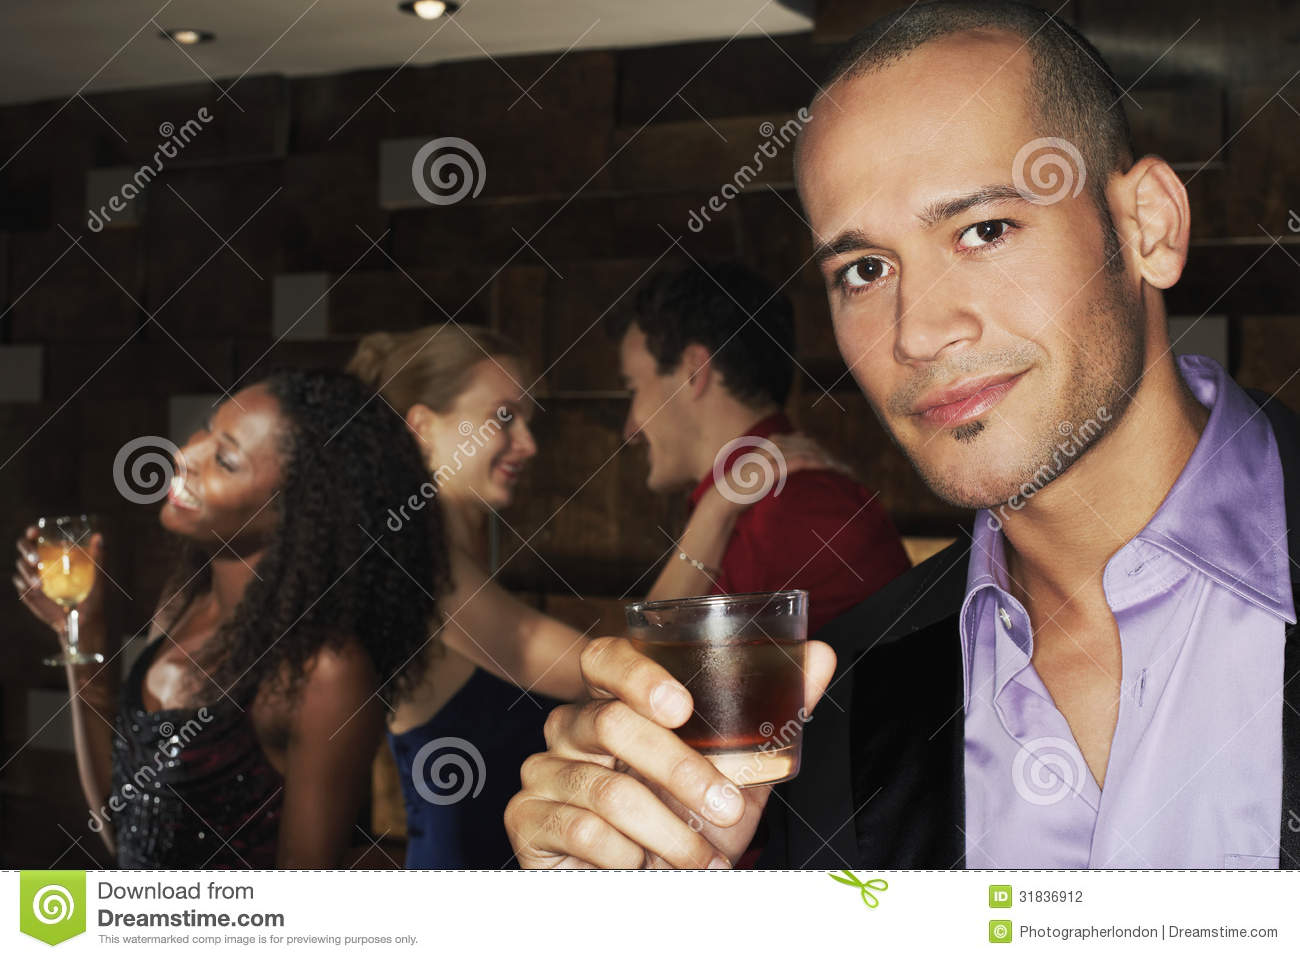 Man Holding Drink With People Dancing Behind At Bar Stock